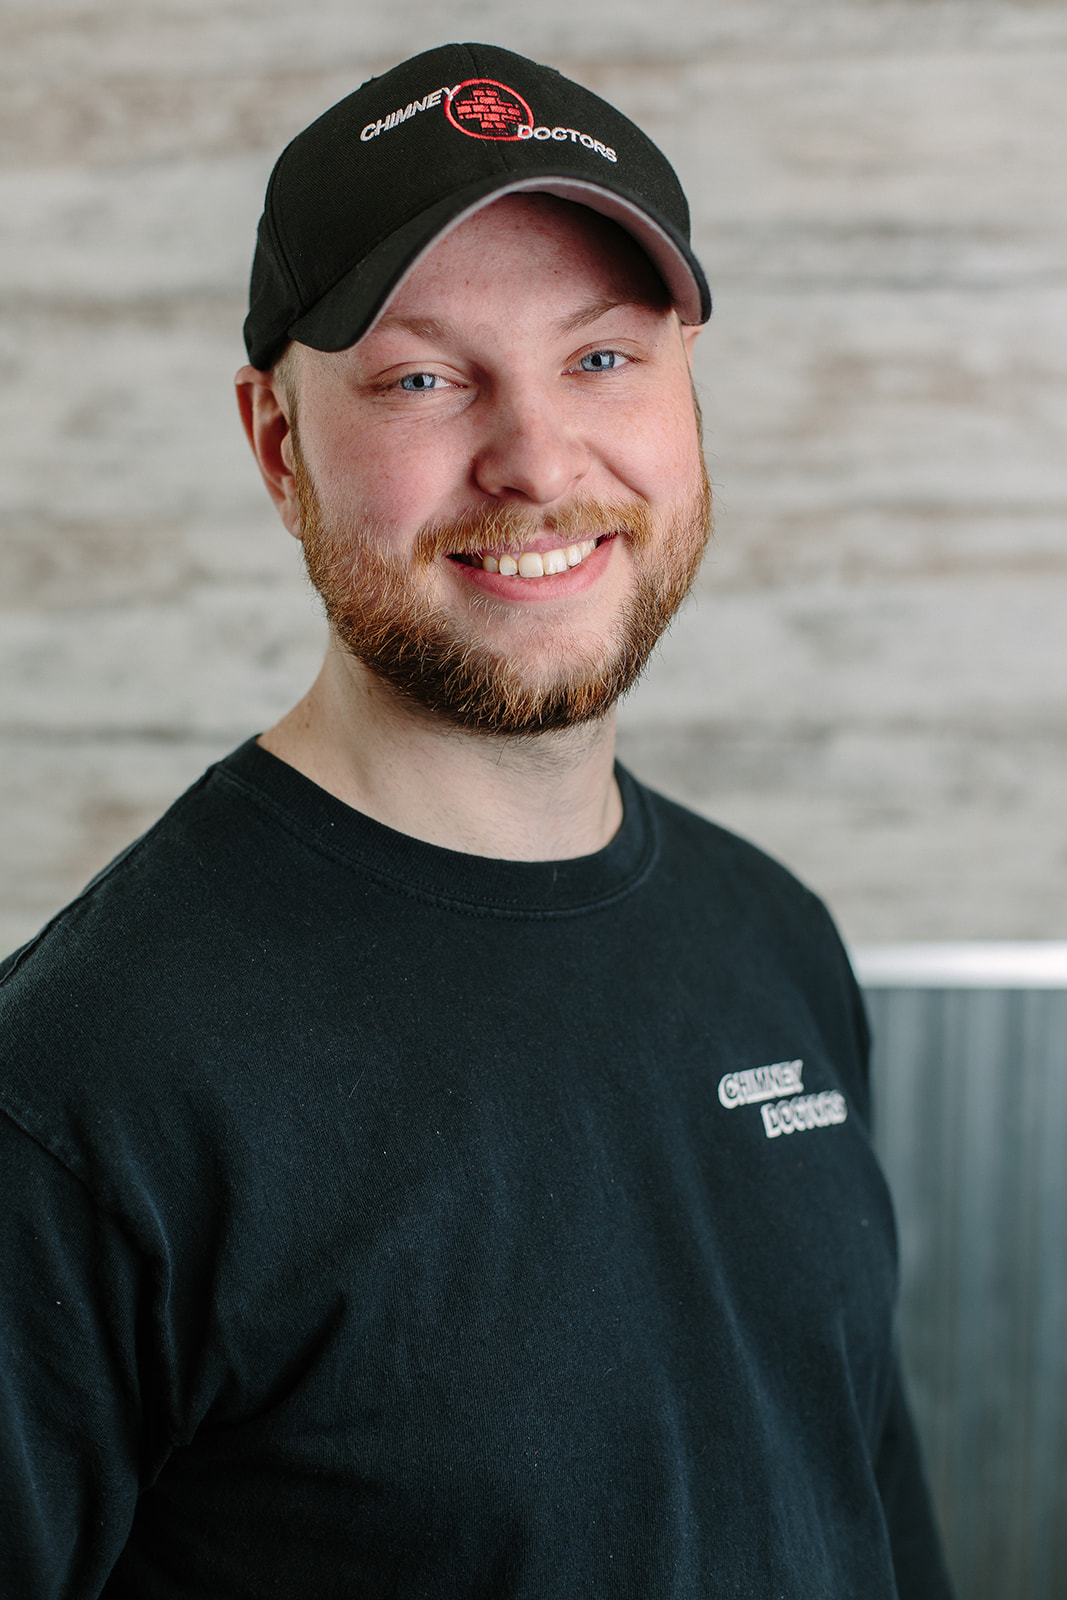 Caleb Isle: CSIA Certified Chimney Technician - C.S.I.A Cert # 10015Specializes In:Chimney Inspections and SweepingHeat Shield ProductsChimney Reline'sWood Inserts